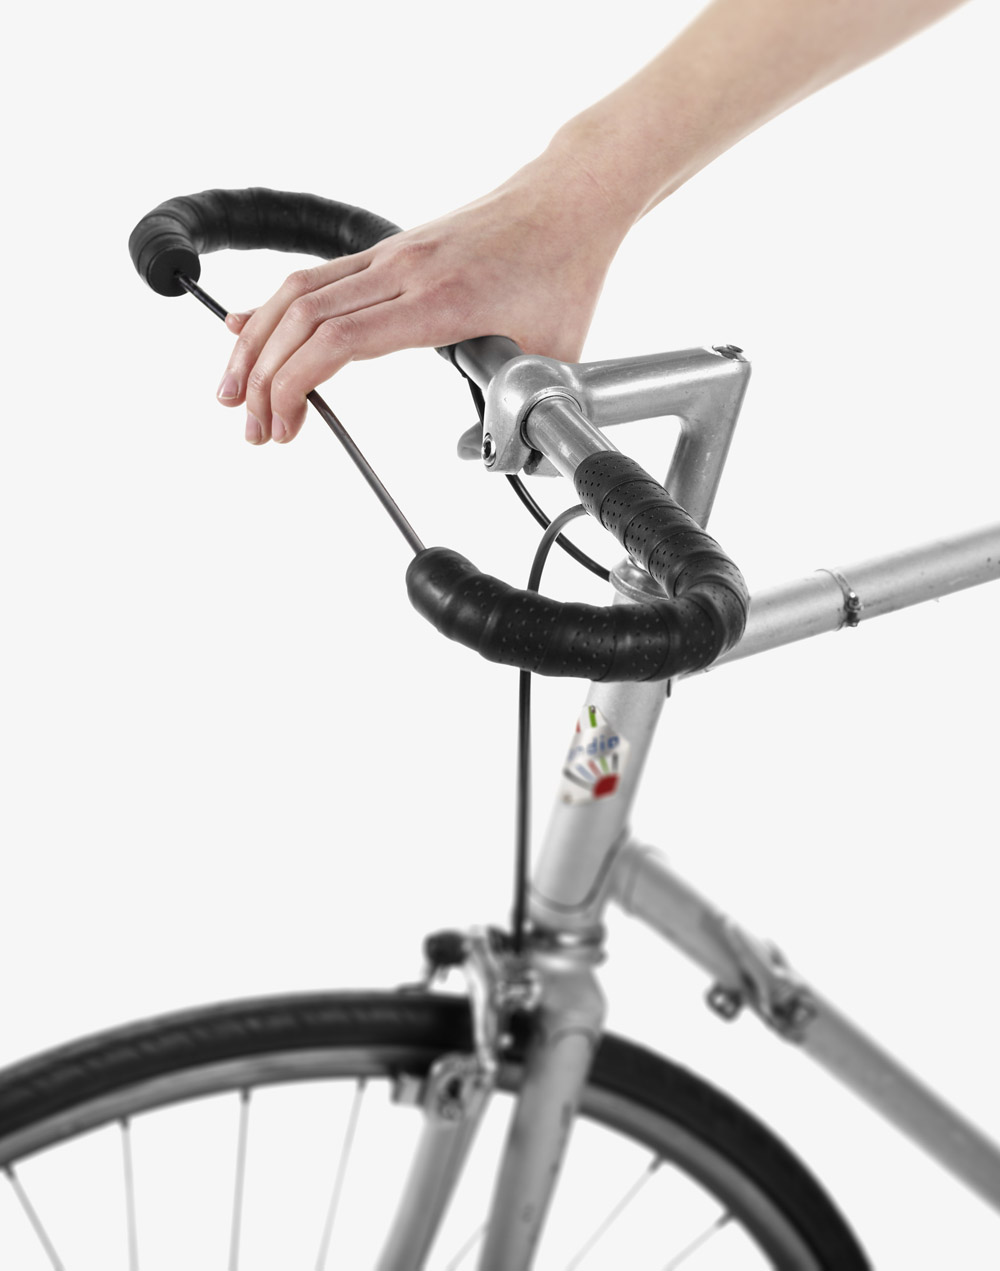 15 Coolest And Most Innovative Bike Gadgets Part 2